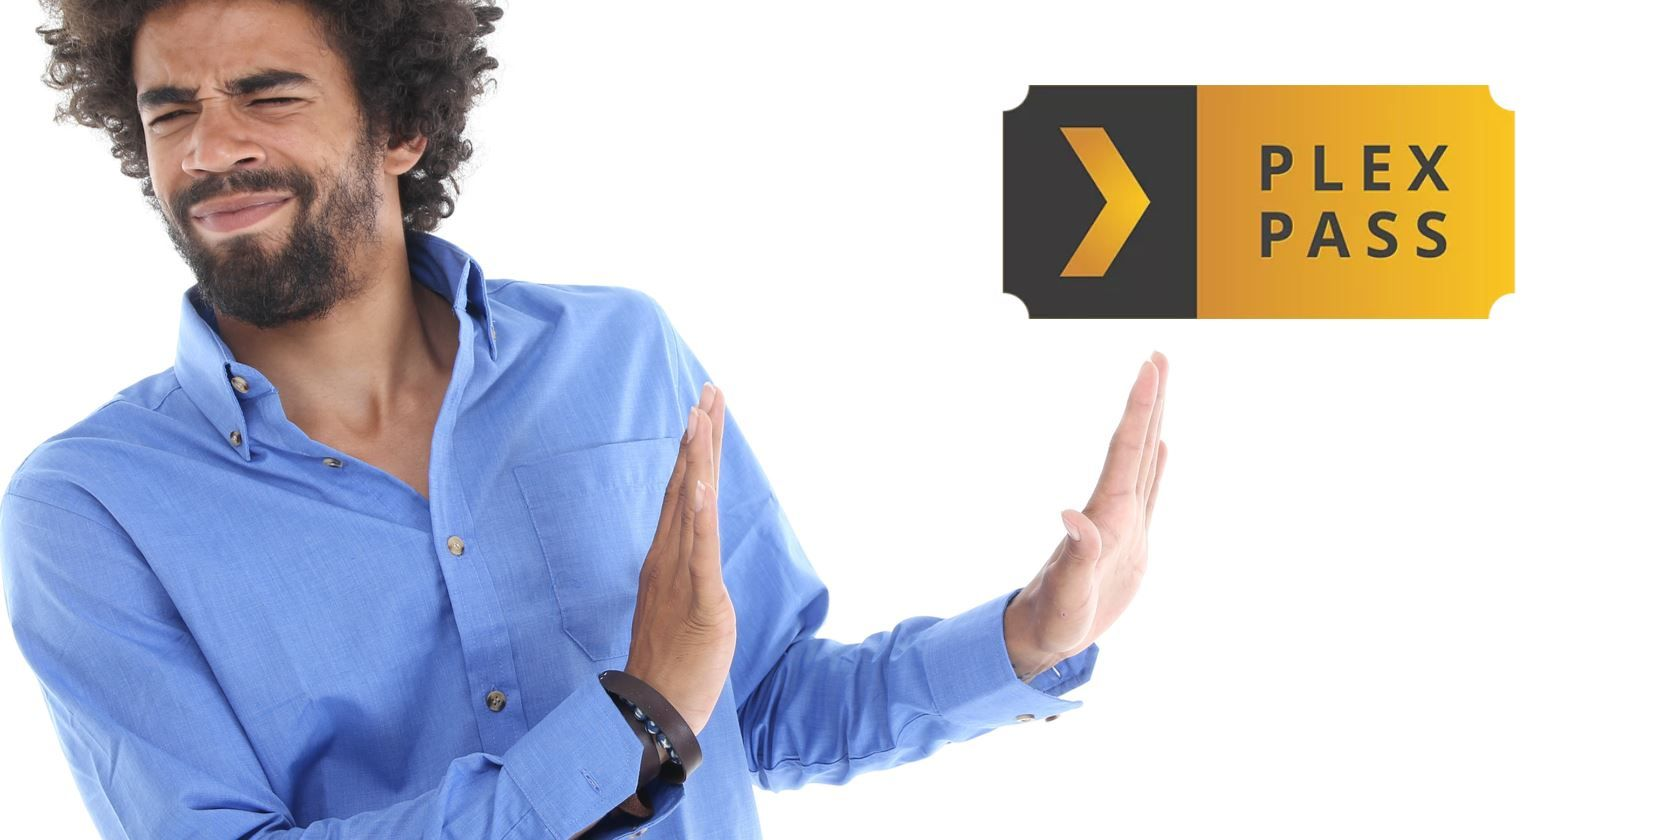 MakeUseOf | 5 Reasons Why You Don't Actually Need a Plex Pass